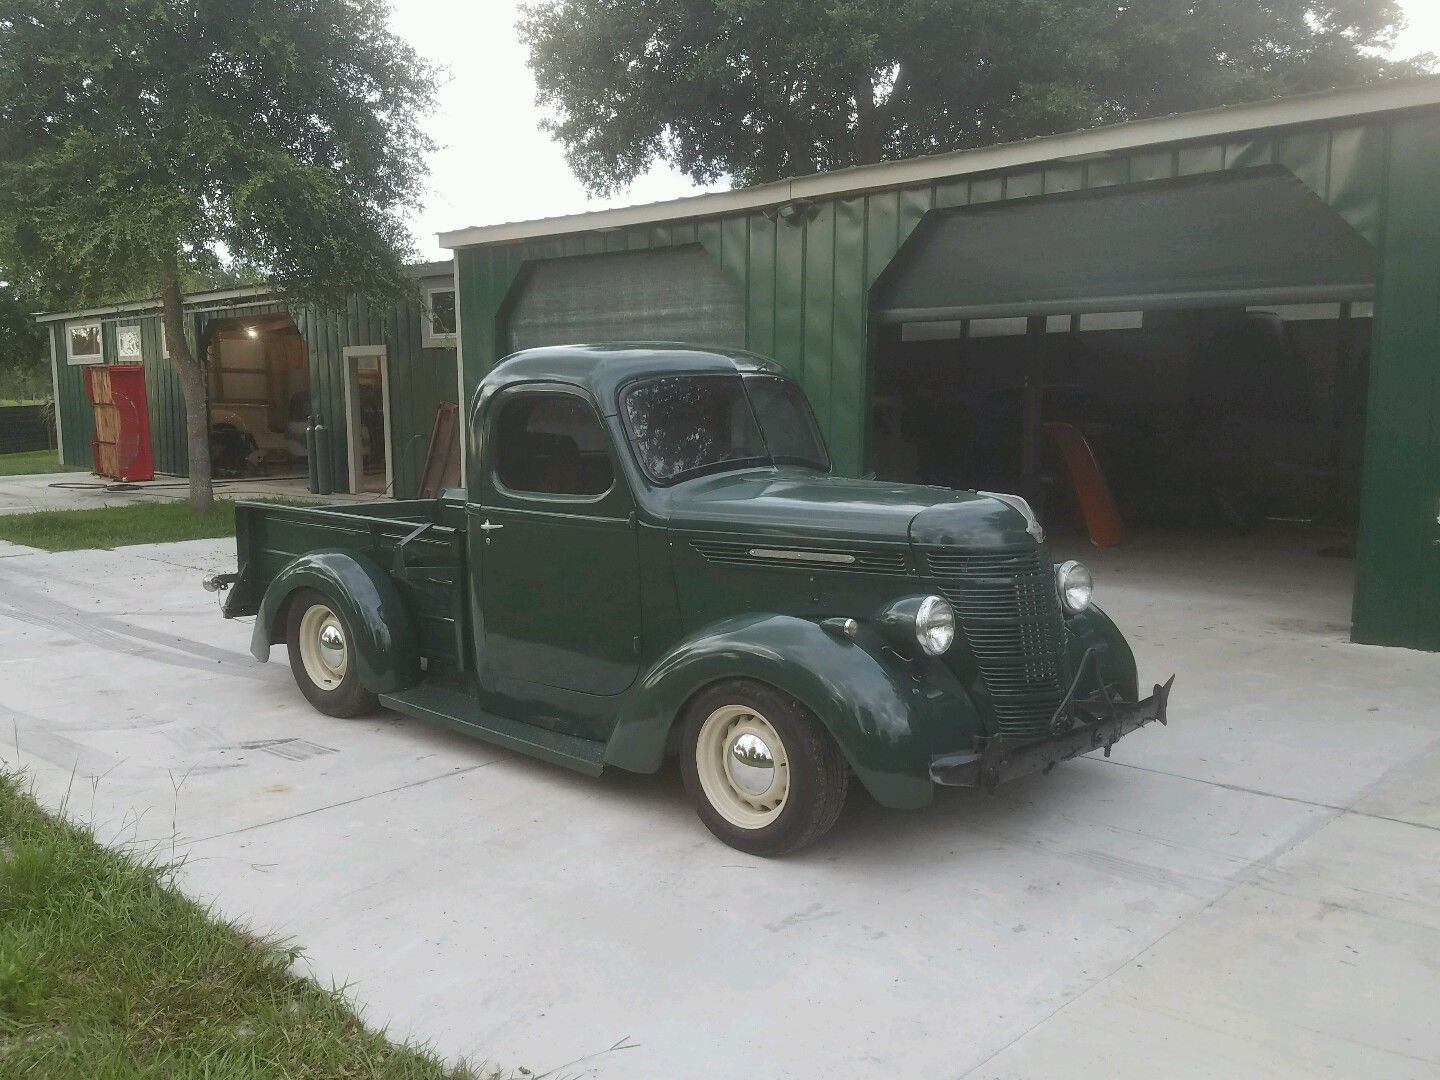 For Sale 1940 International Truck With A Chevy V8 Engine Swap Depot